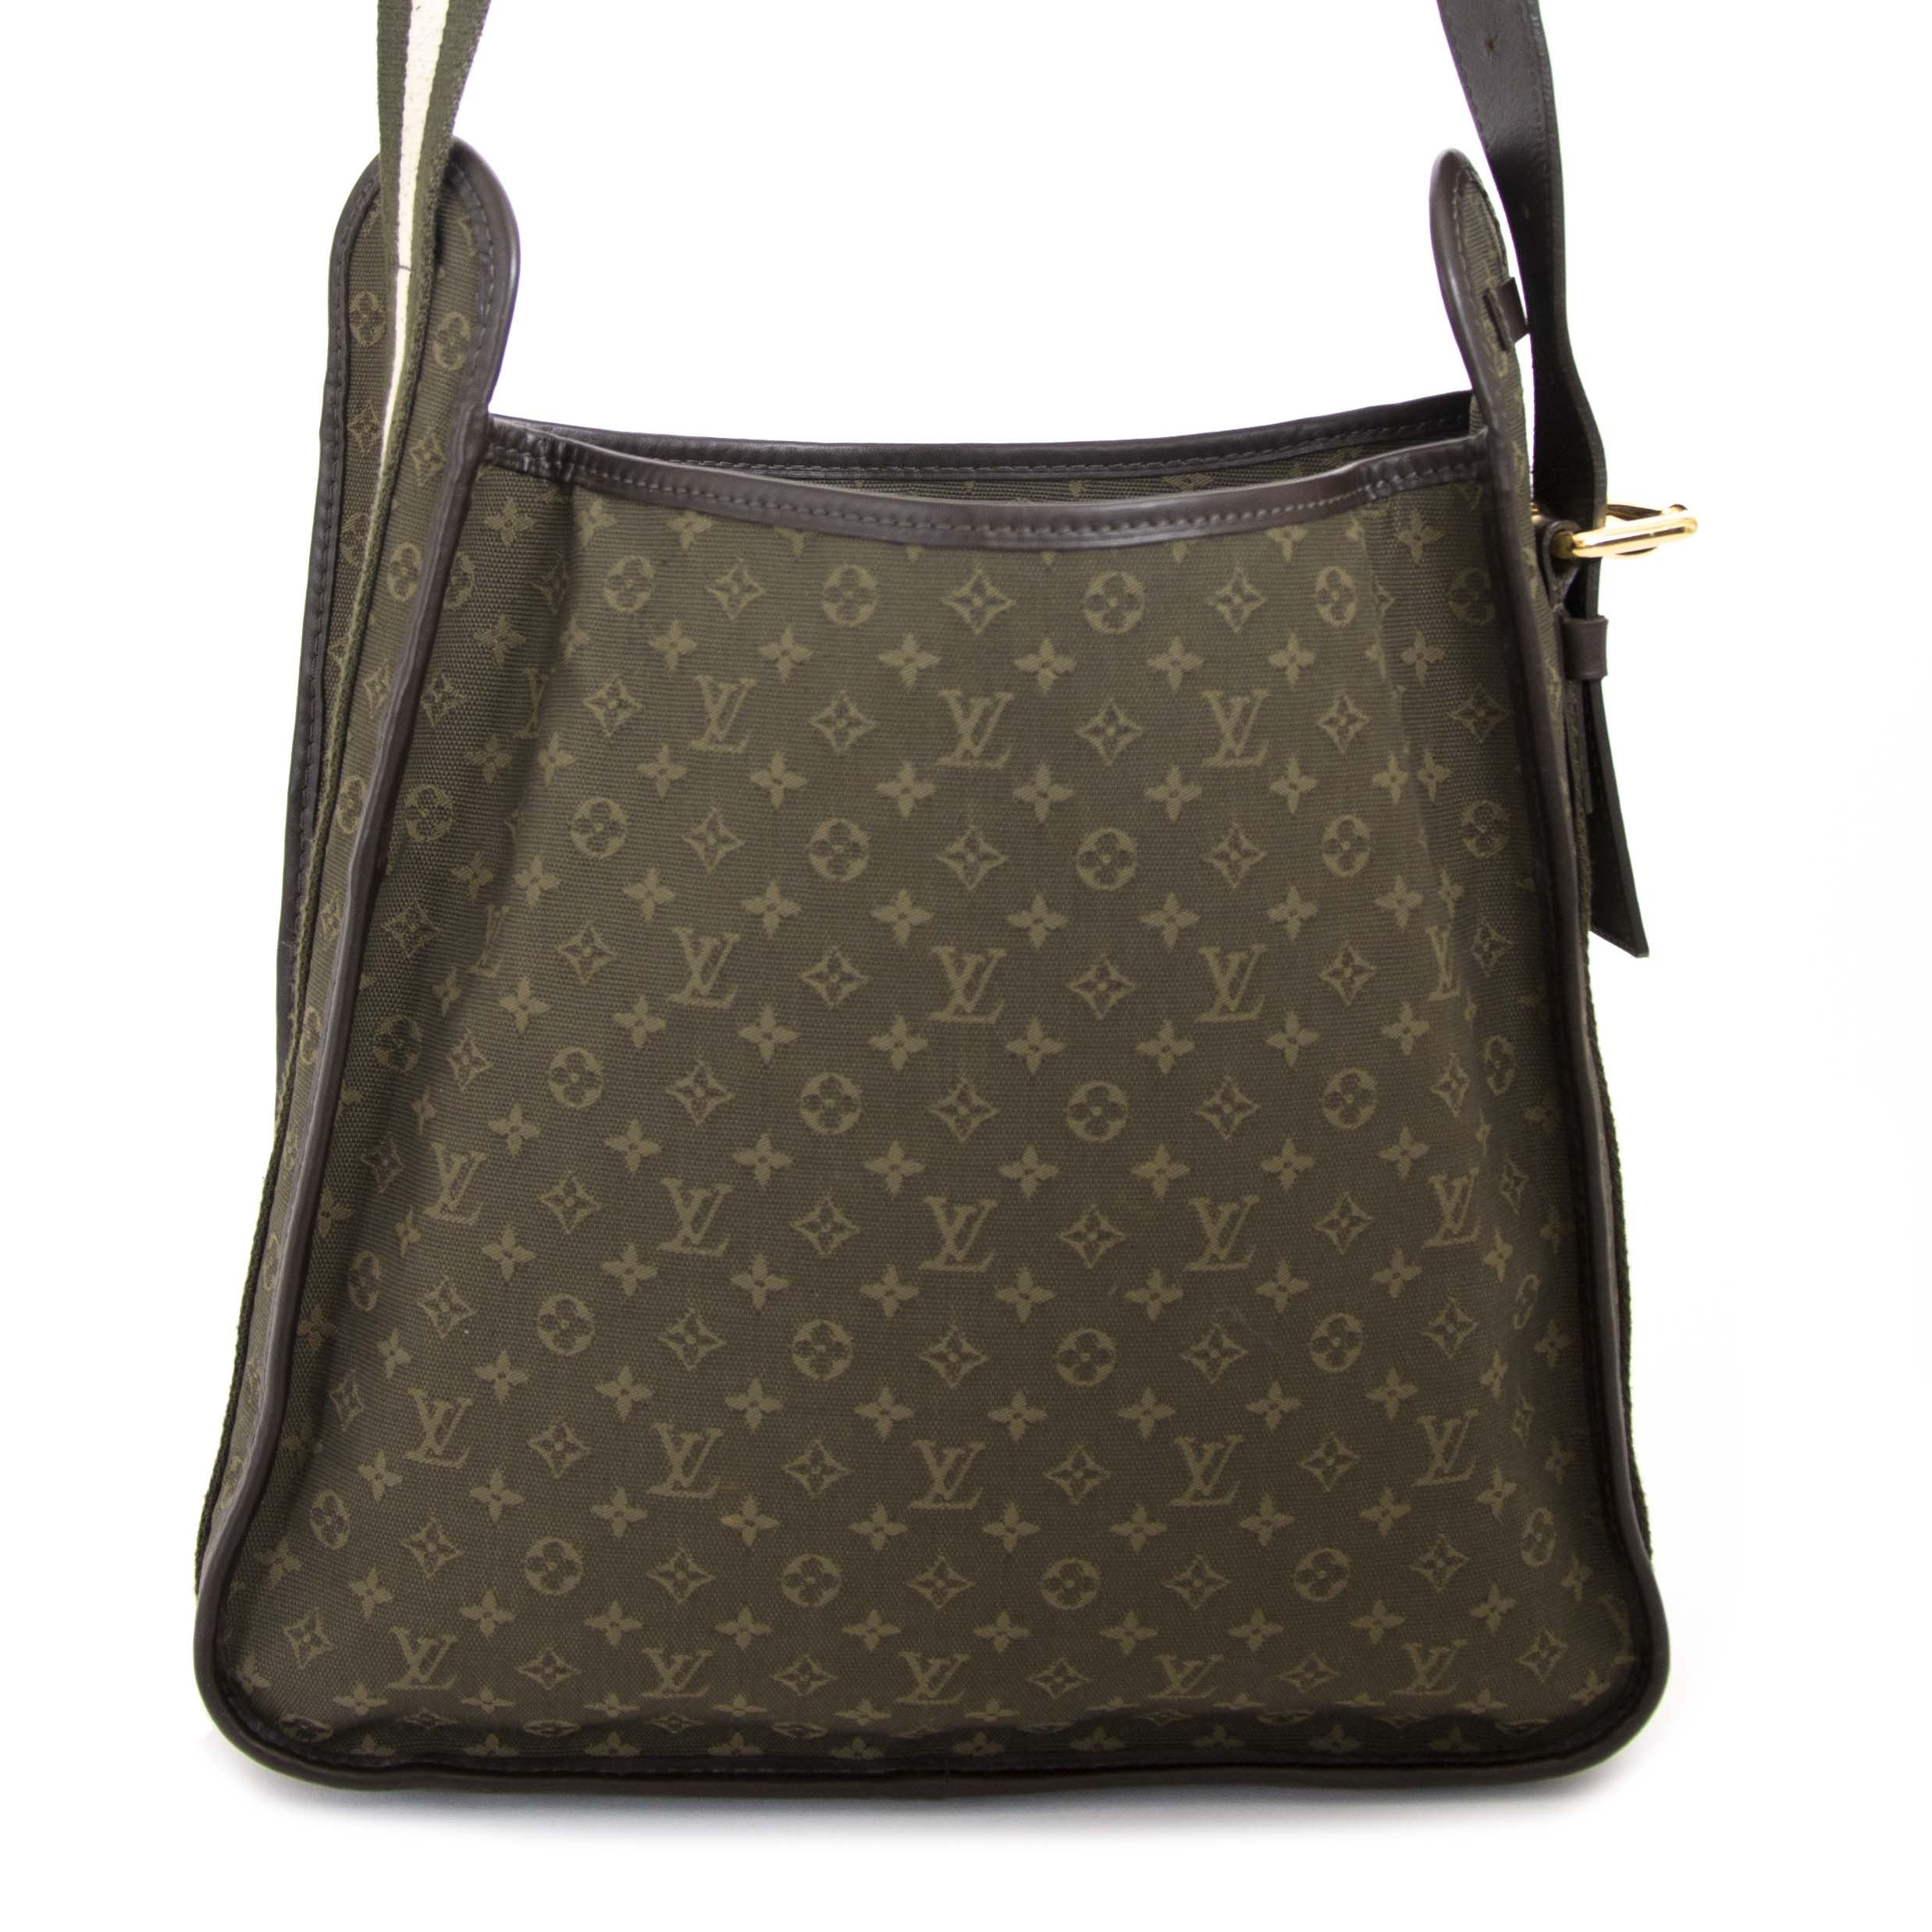 Louis Vuitton Besace Mary Kate Shoulder Bag